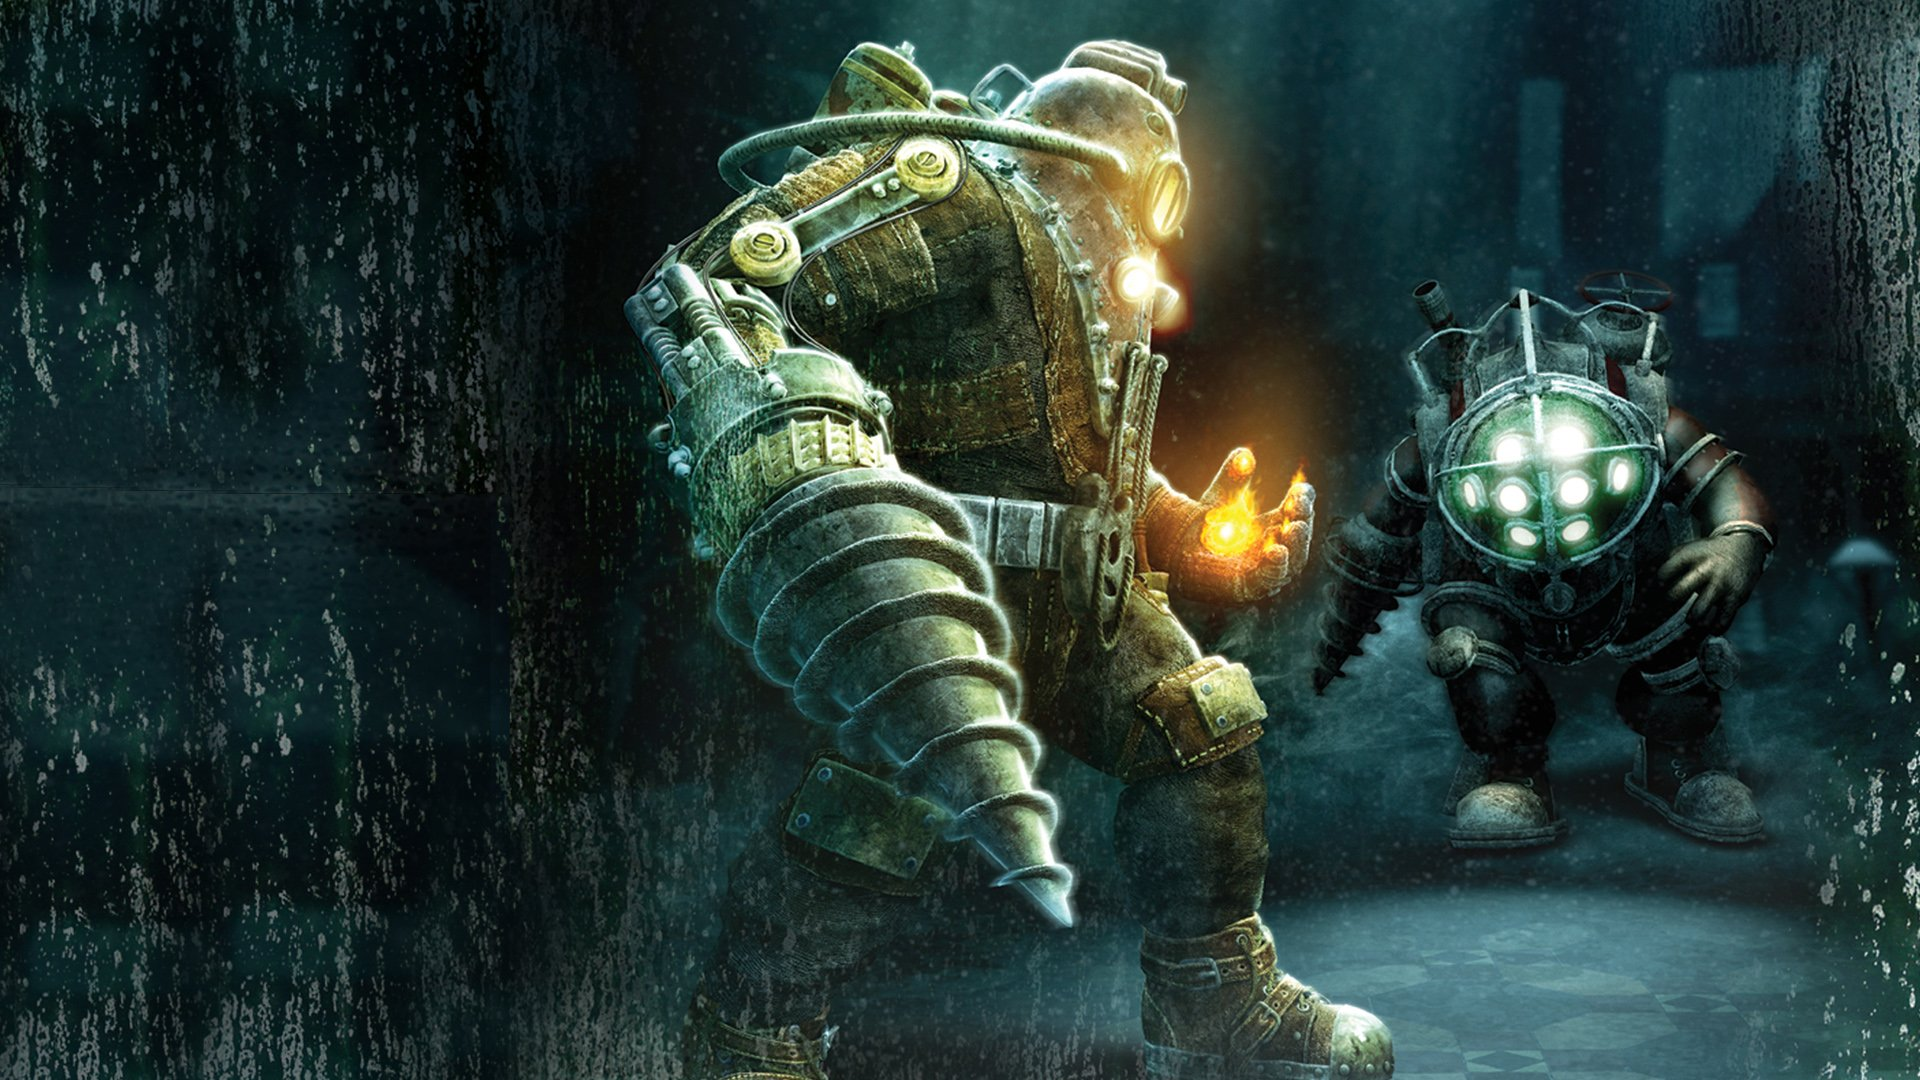 Bioshock 2 HD Wallpaper | Background Image | 1920x1080